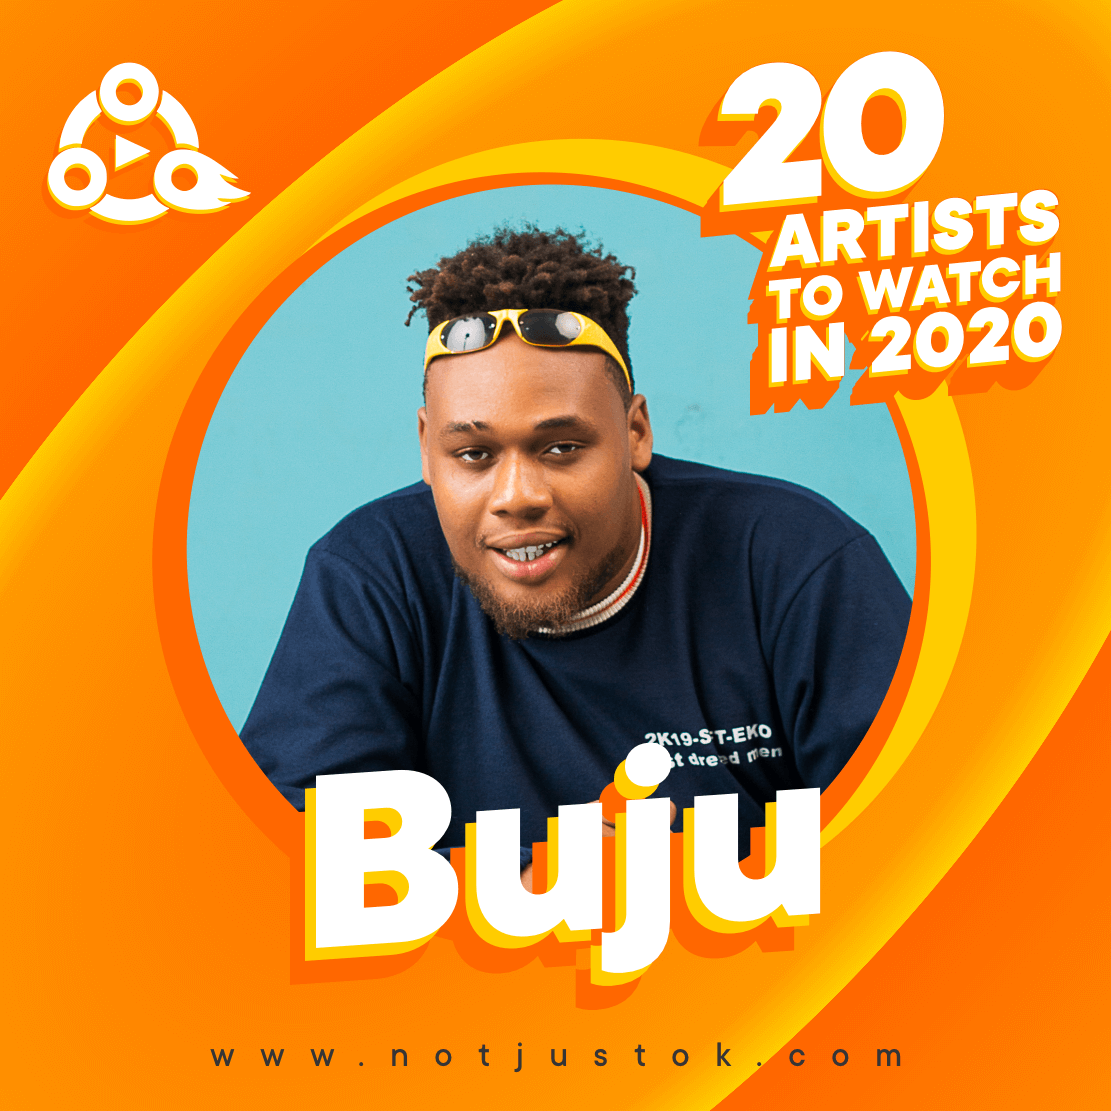 The 20 Artistes To Watch In 2020 - Buju